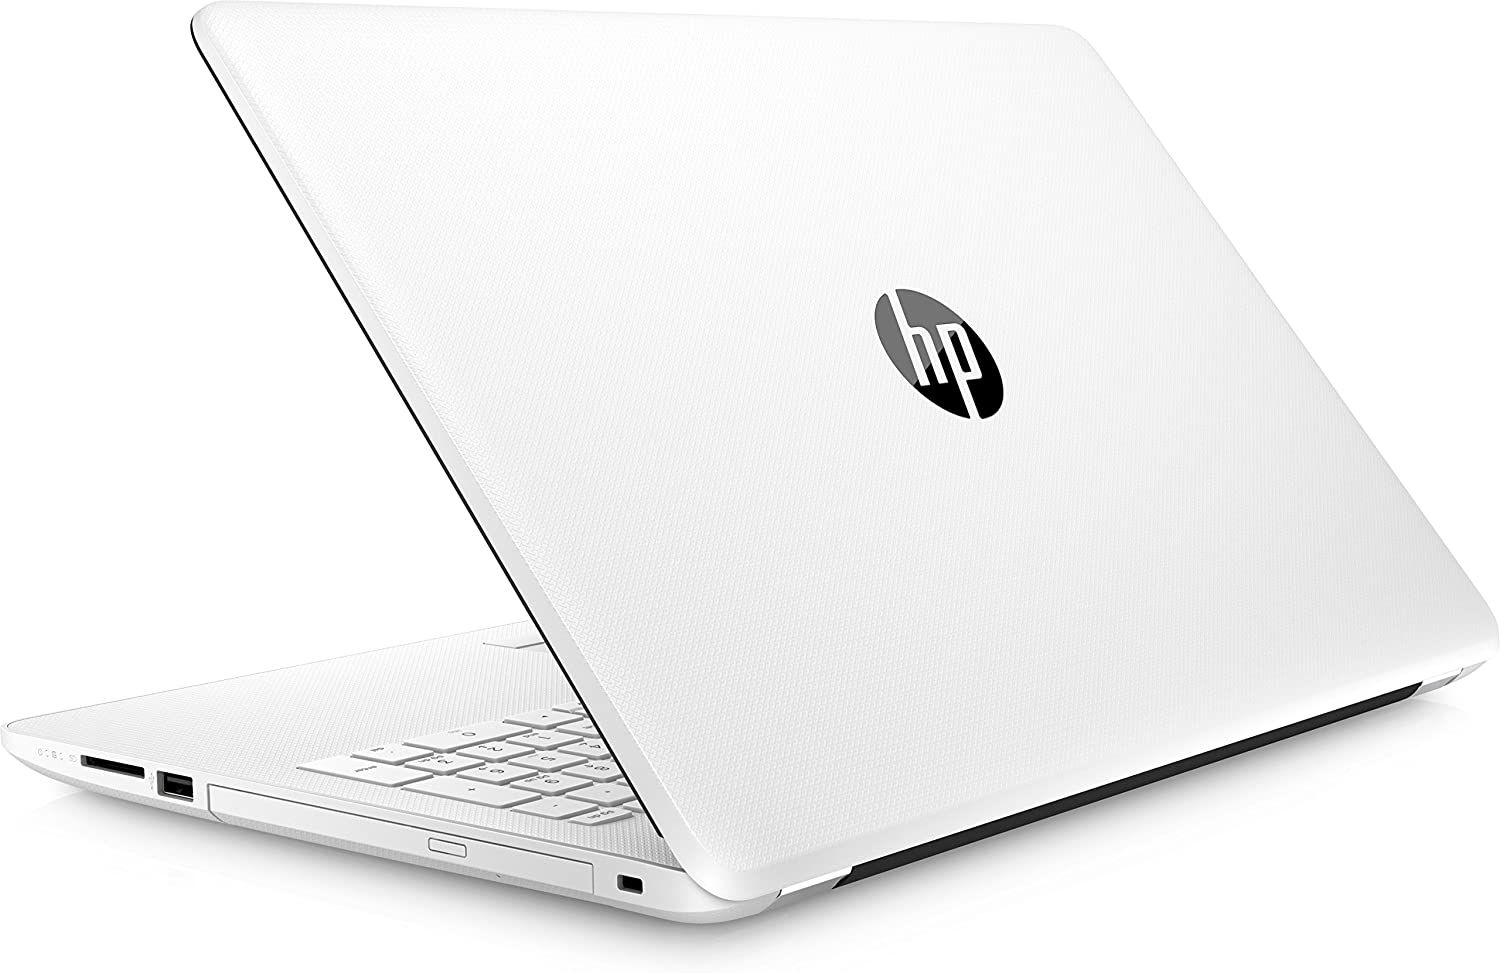 HP 15-BS152NS Blanco PORTÁTIL 15.6 LCD LED HD Ready/i3 2.0GHz/256GB SSD/8GB RAM/W10 Home/DVD-R: Hp: Amazon.es: Informática